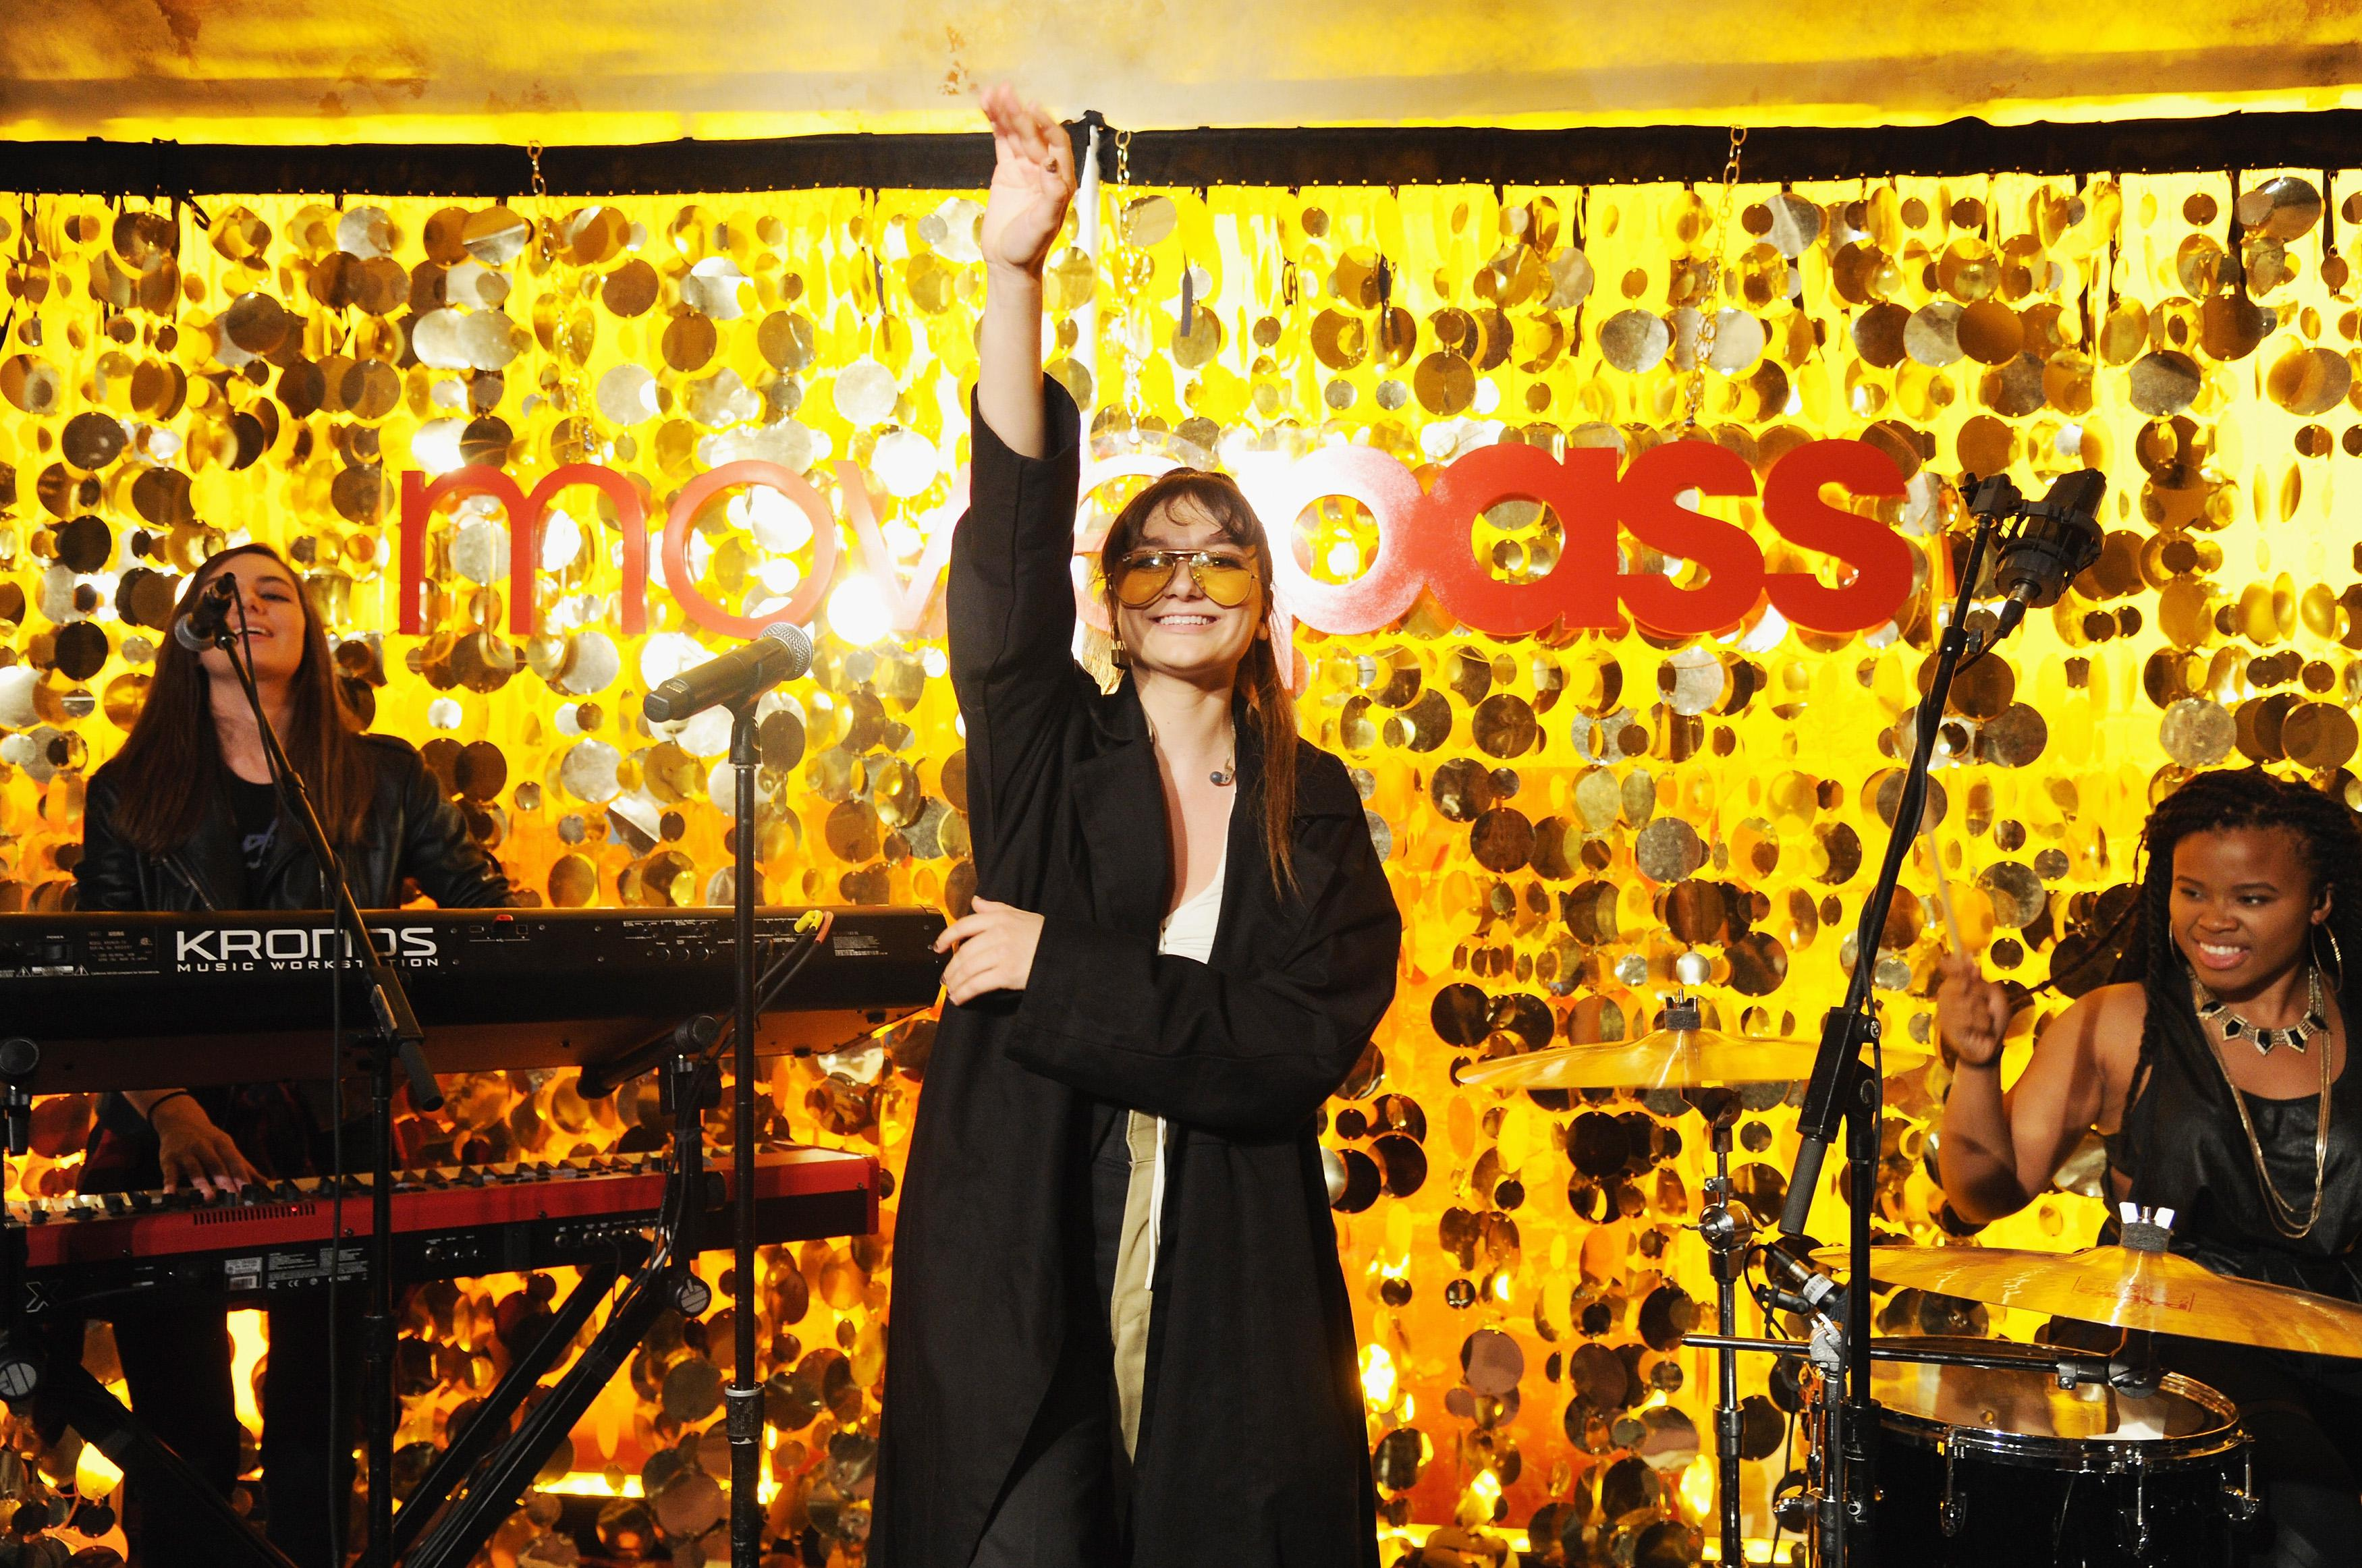 Daya performs during a MoviePass event.